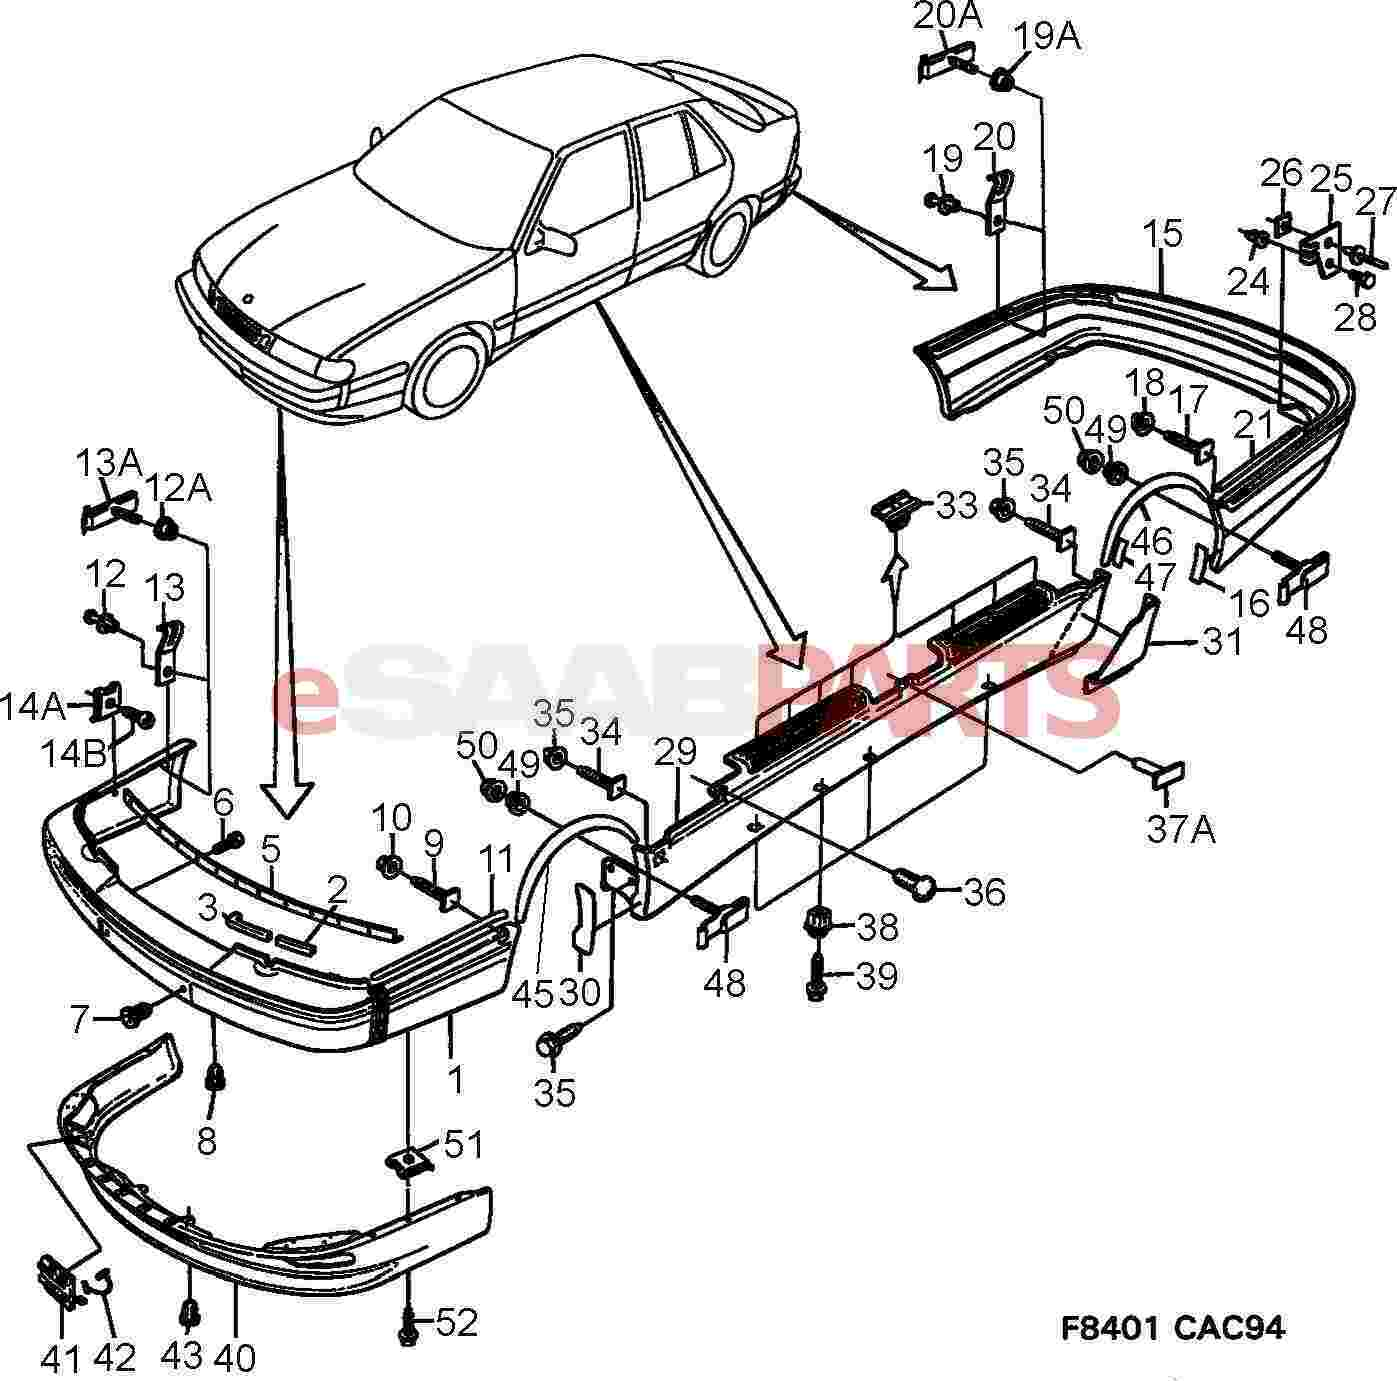 2007 Vue Wiring Diagram also Showthread additionally How To Replace Timing Chain On Audi A3 1 8 Tfsi 2008 2012 furthermore Showthread further 2005 saab 9 3 fuse box diagram. on saab aero